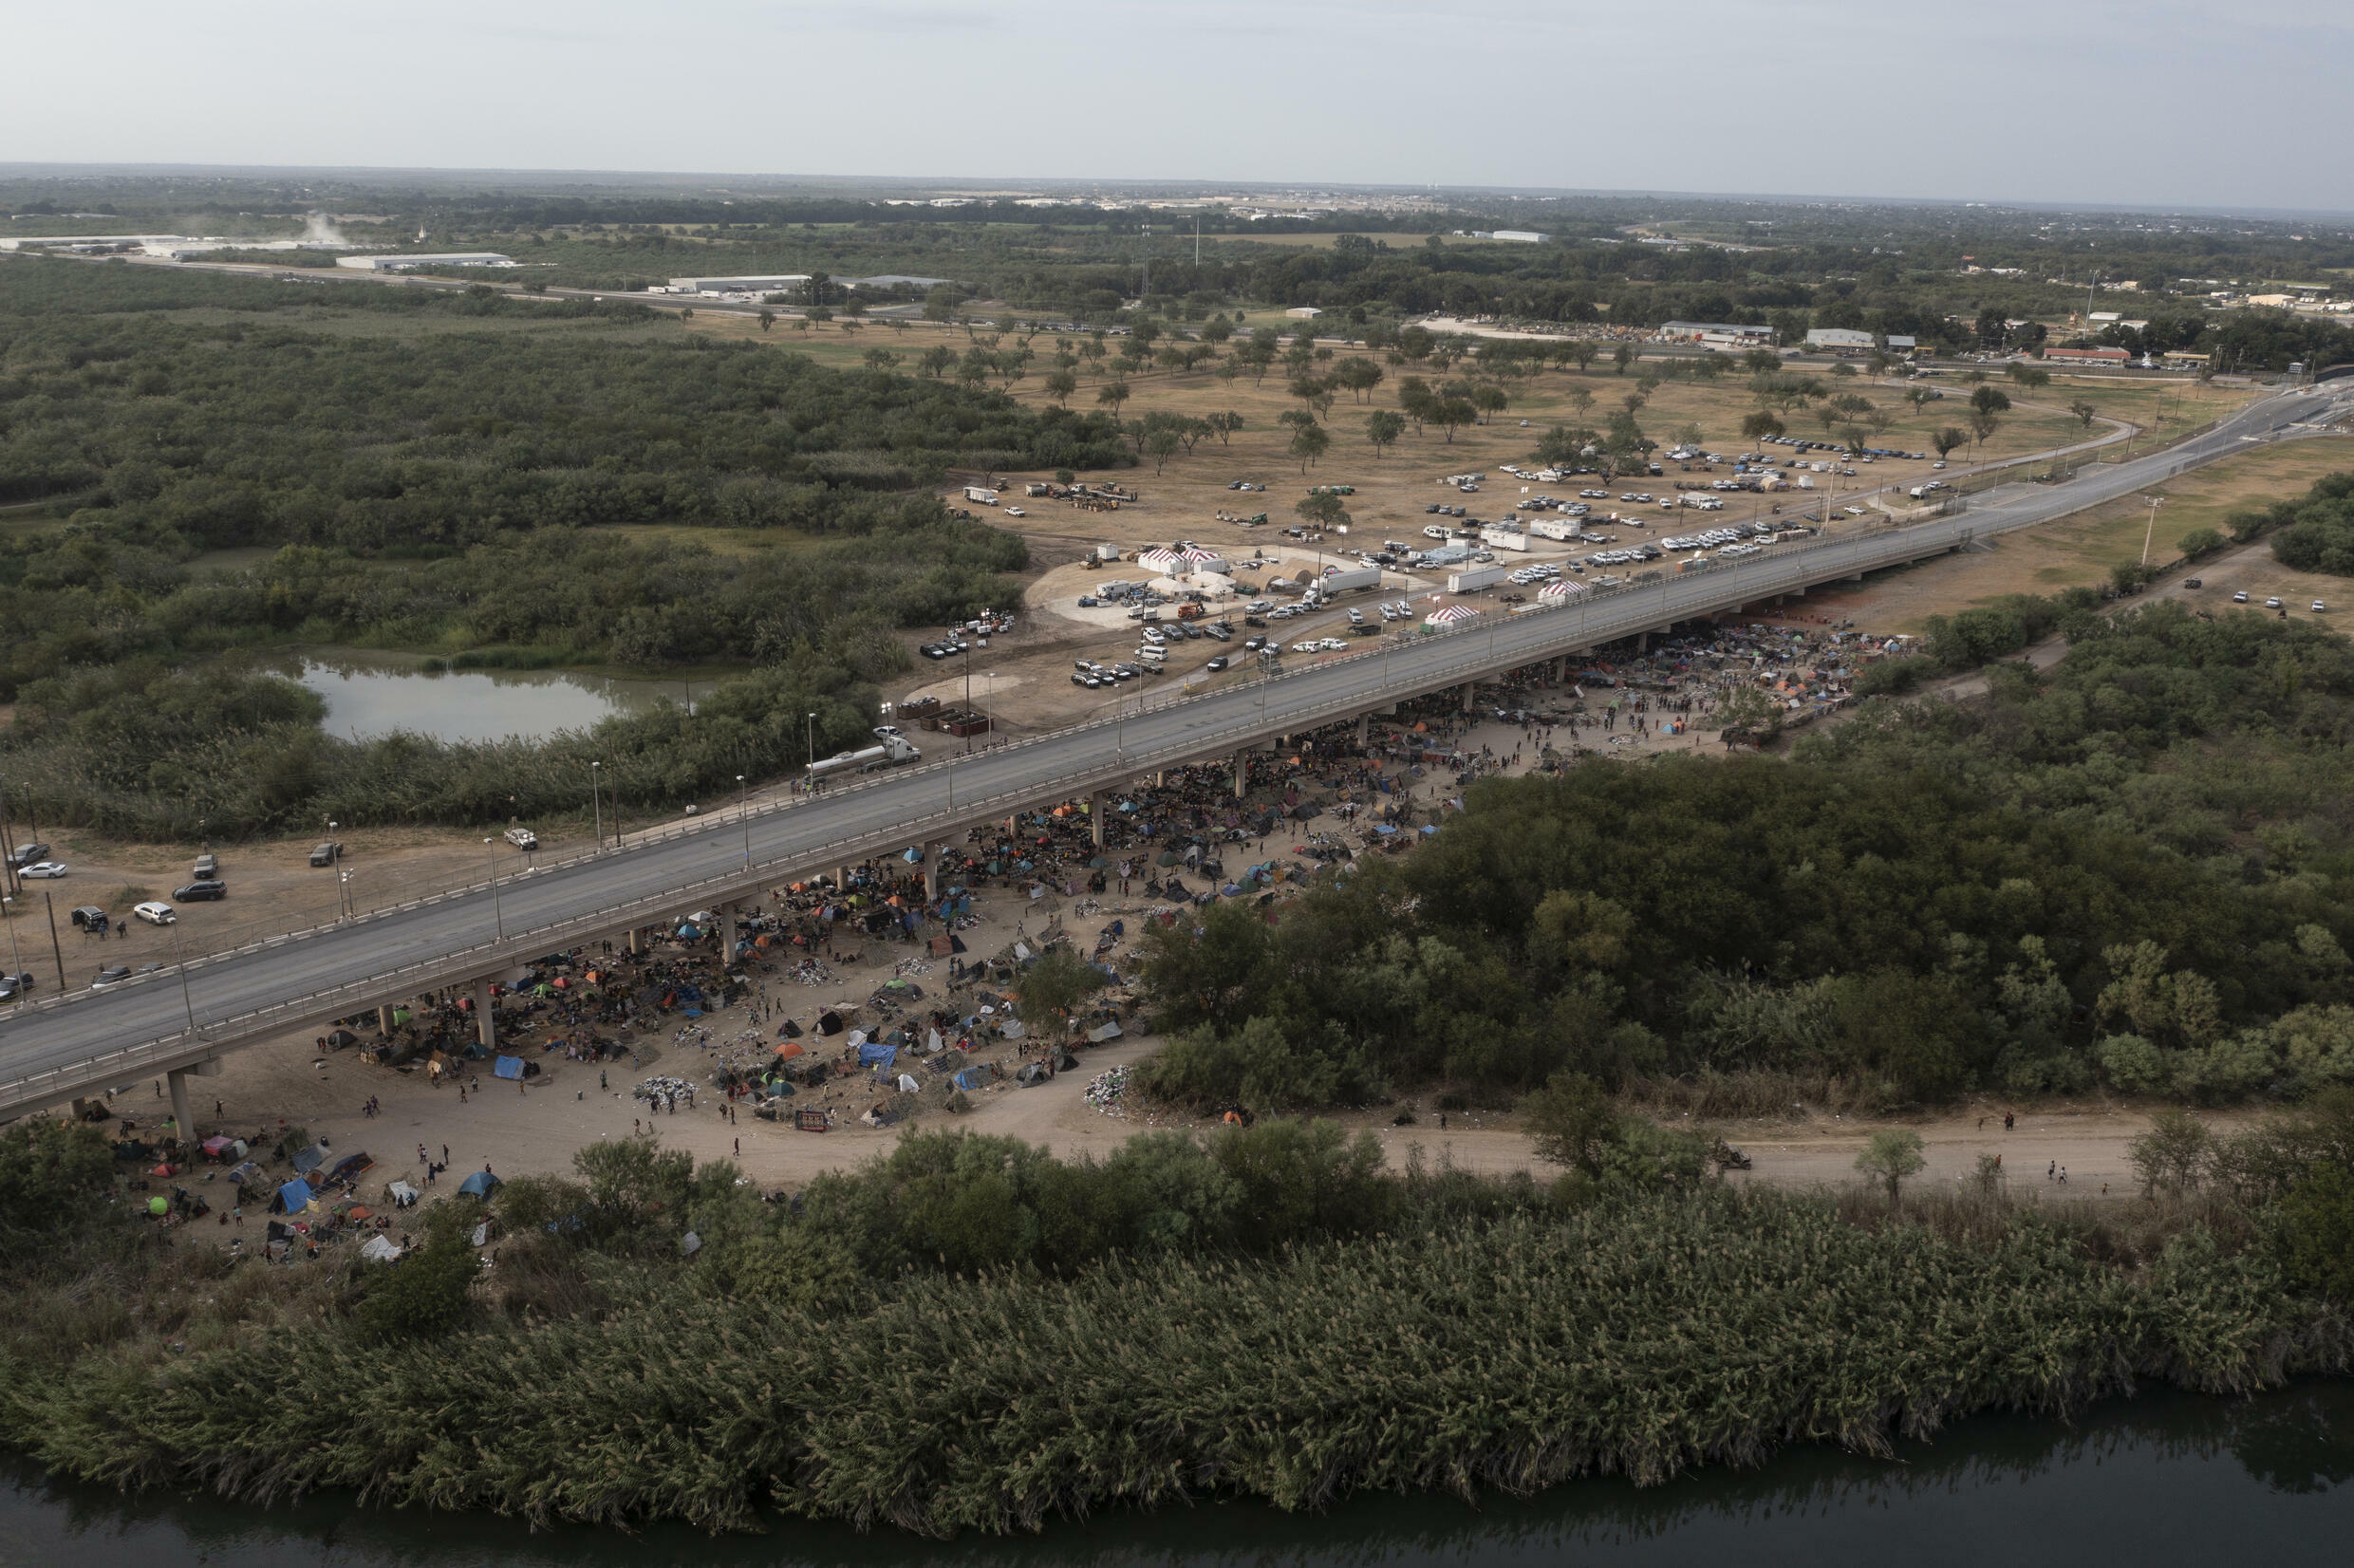 Like thousands of other migrants, Andre ended up camped under the Del Rio bridge in Texas on the US-Mexico border -- and then was deported home to Haiti